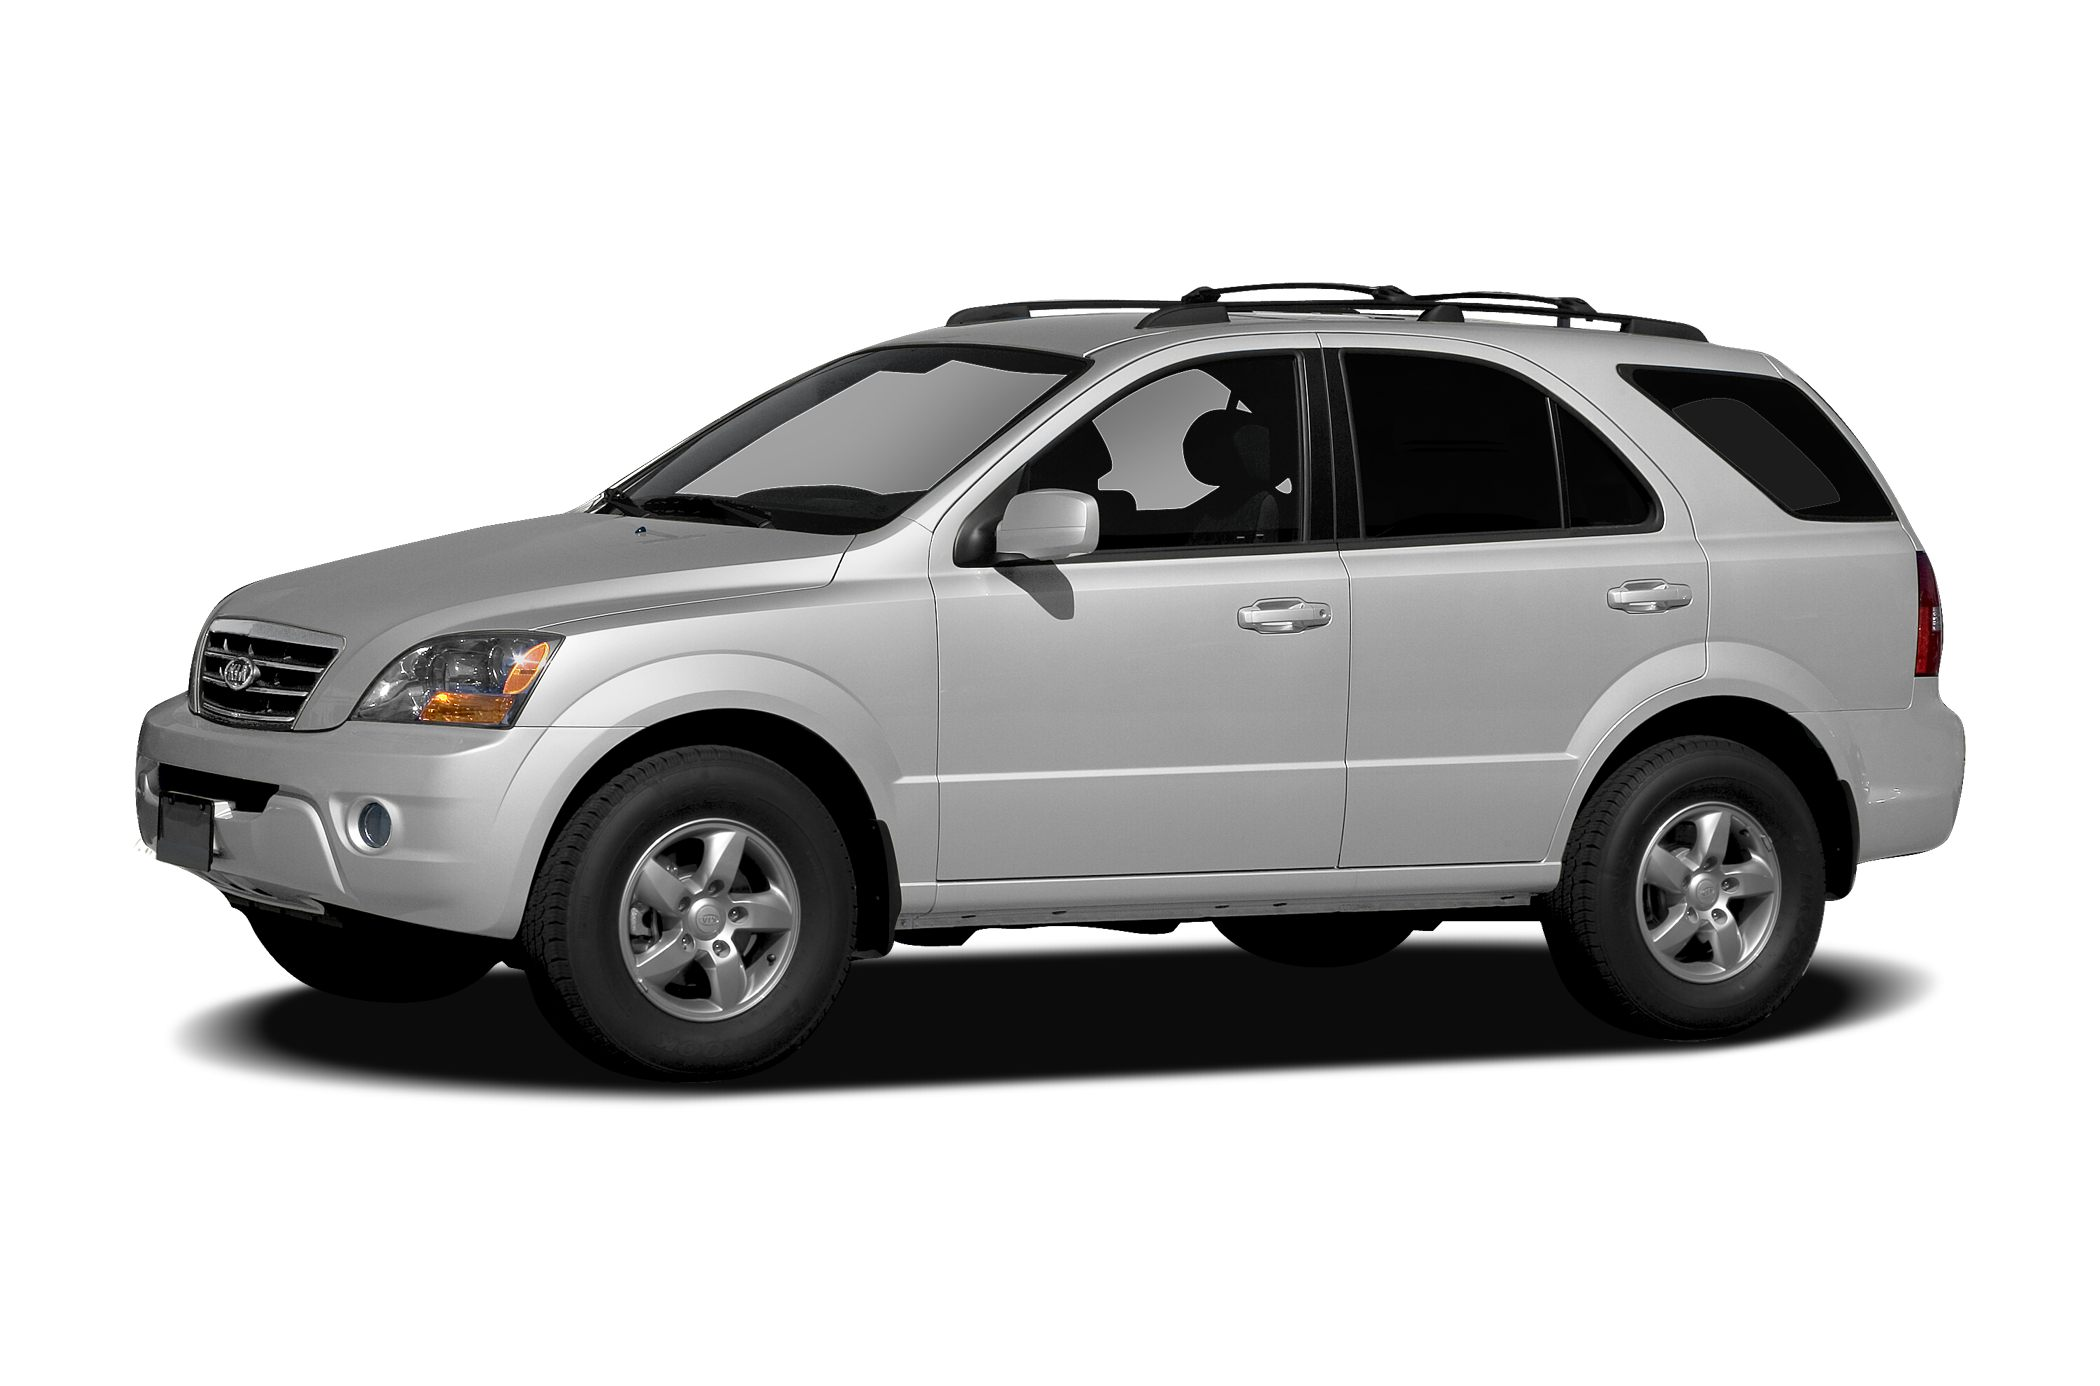 2008 Kia Sorento LX SUV for sale in Warner Robins for $10,986 with 52,124 miles.